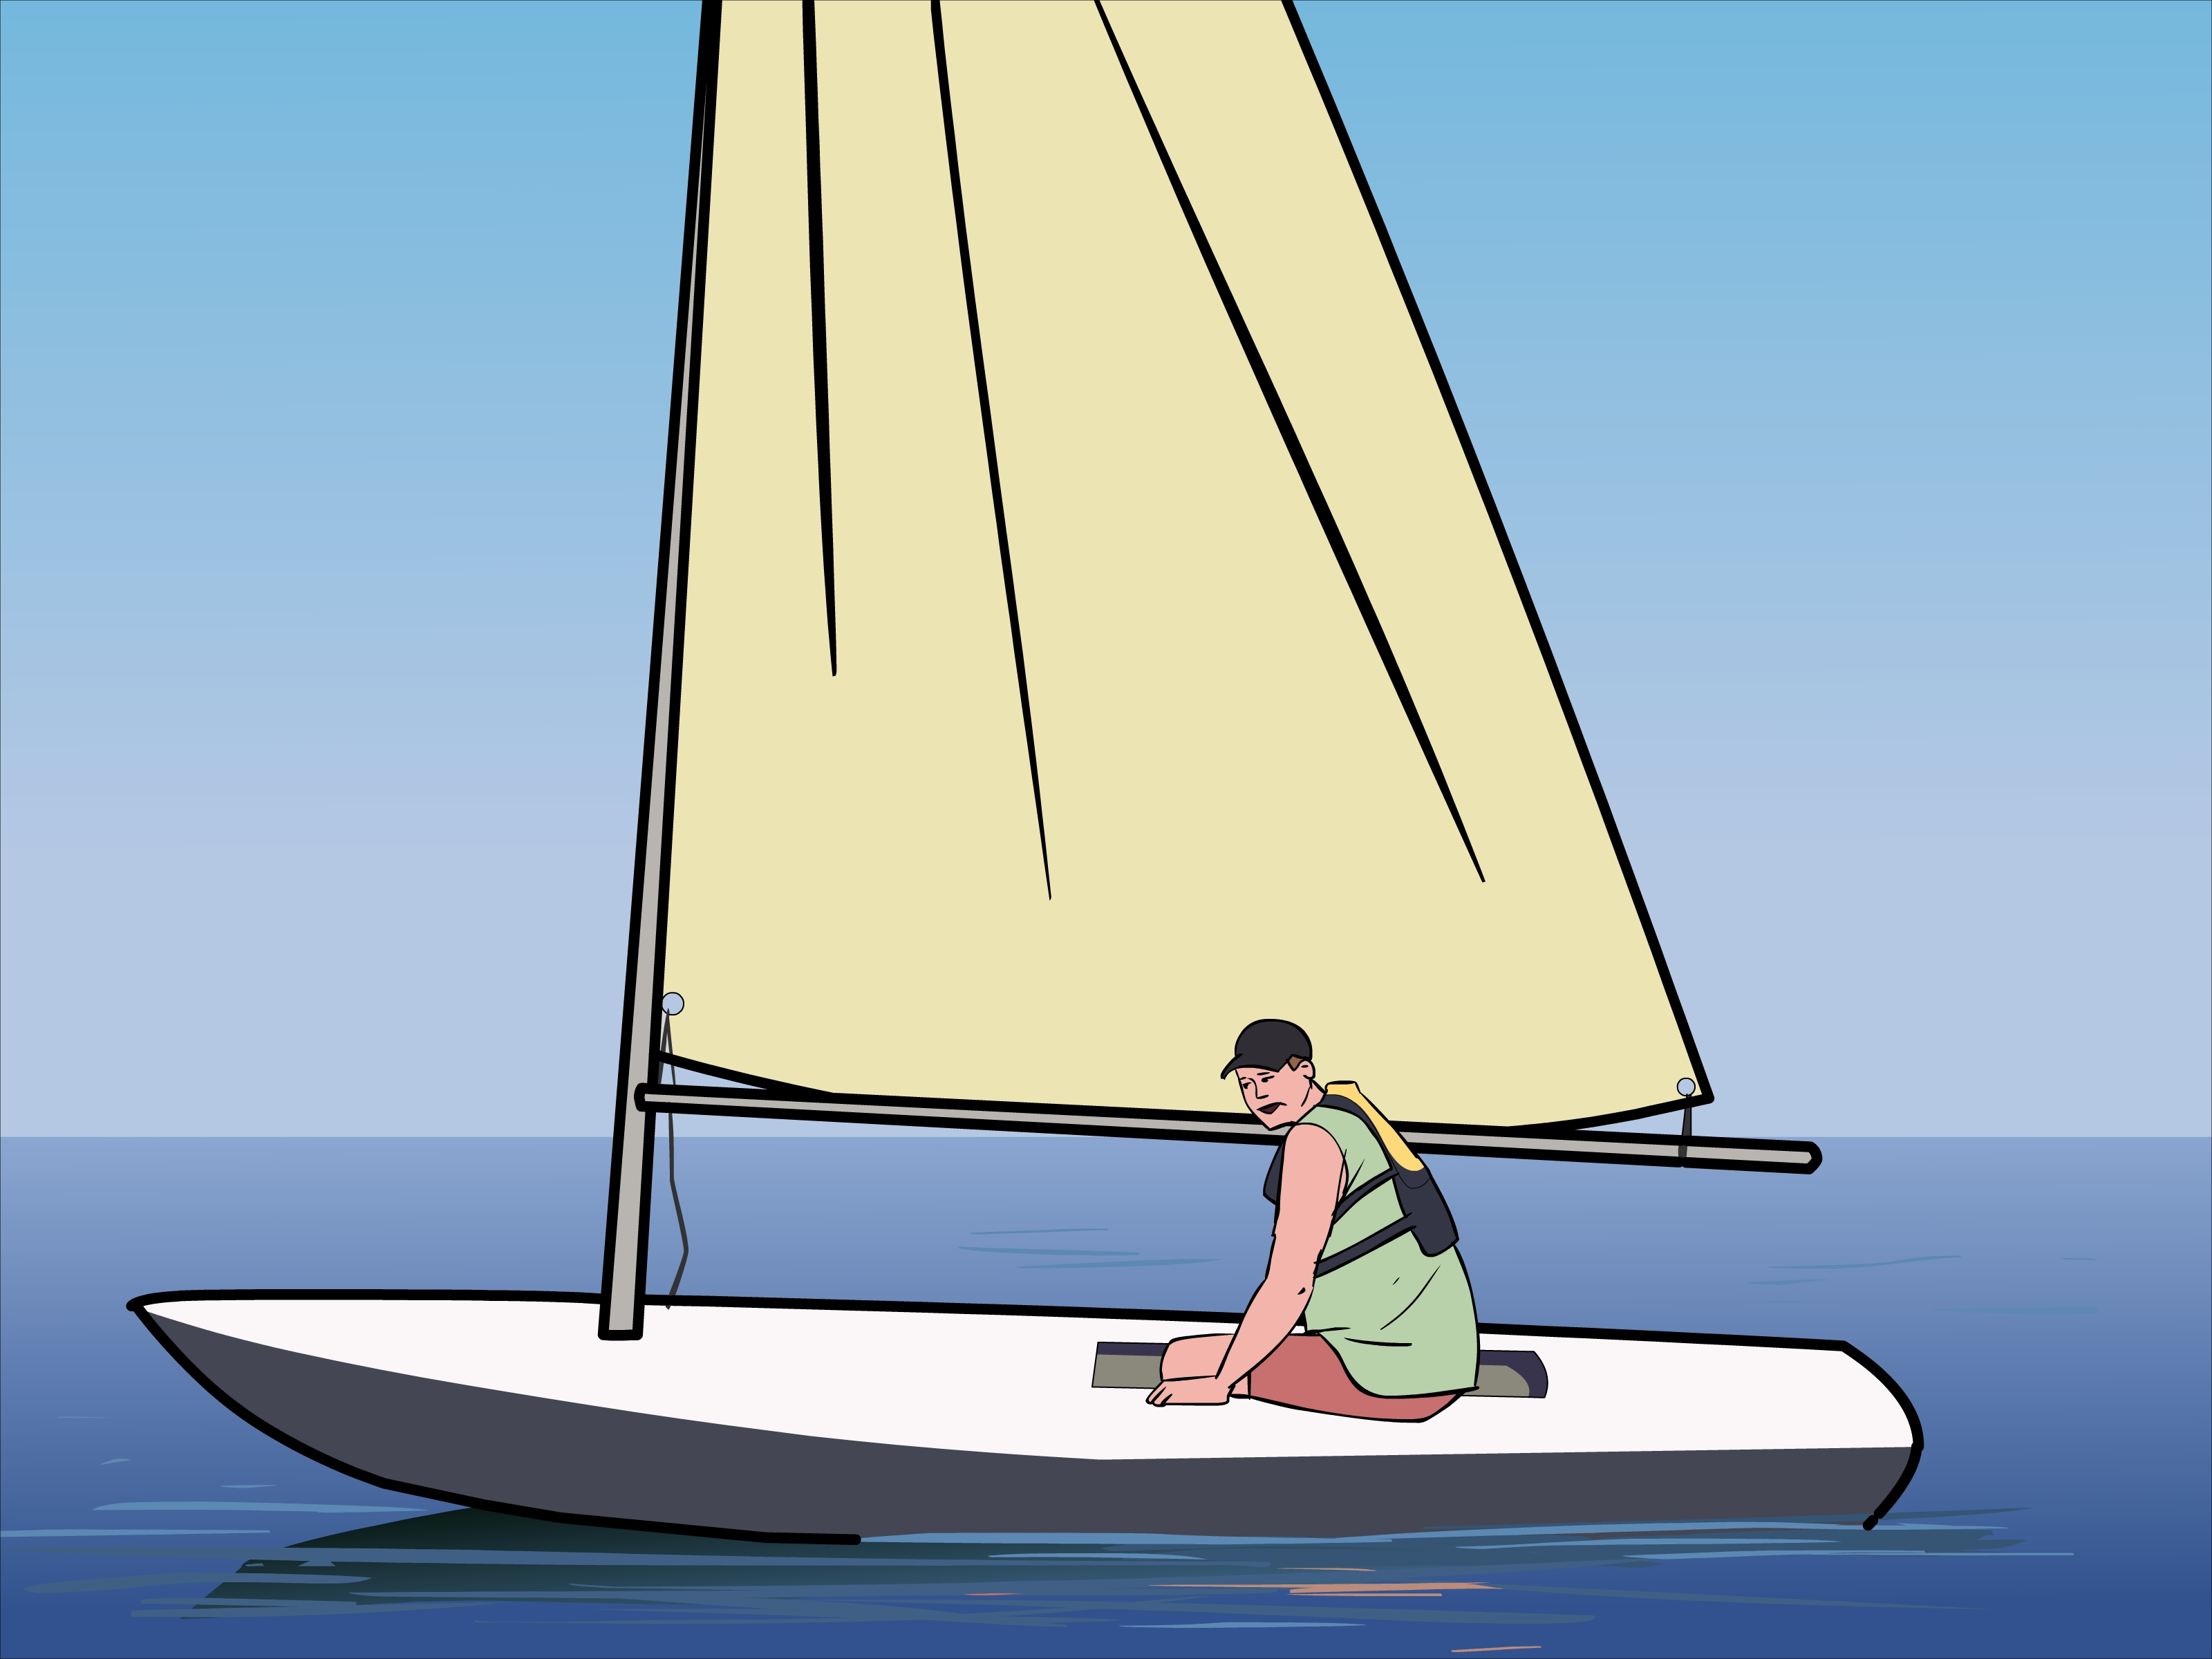 How To Rig A Sunfish Sailboat Diagram